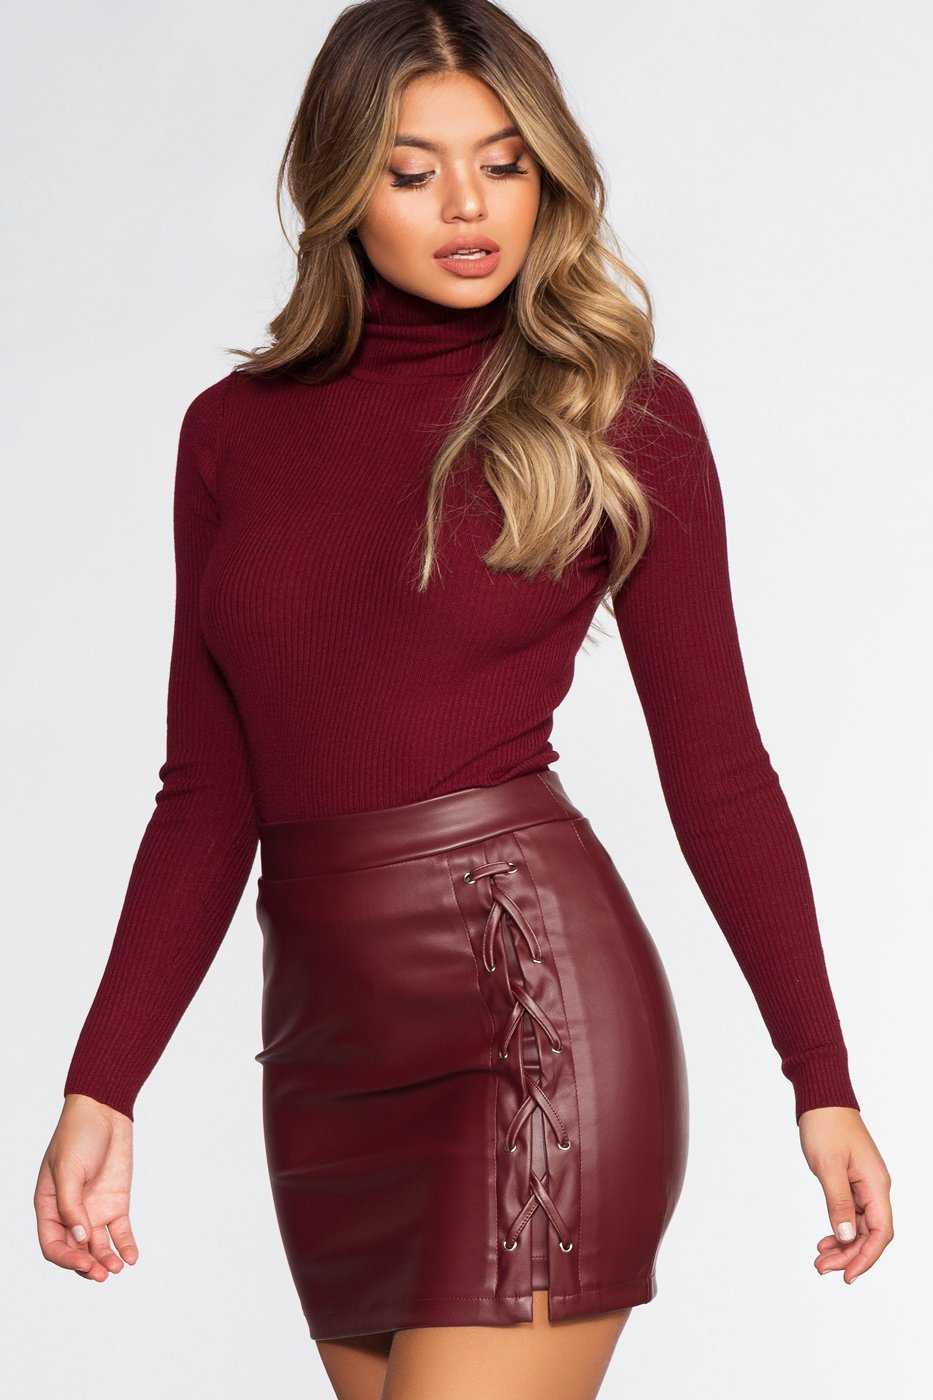 Skirts - Charlie Lace Skirt - Burgundy